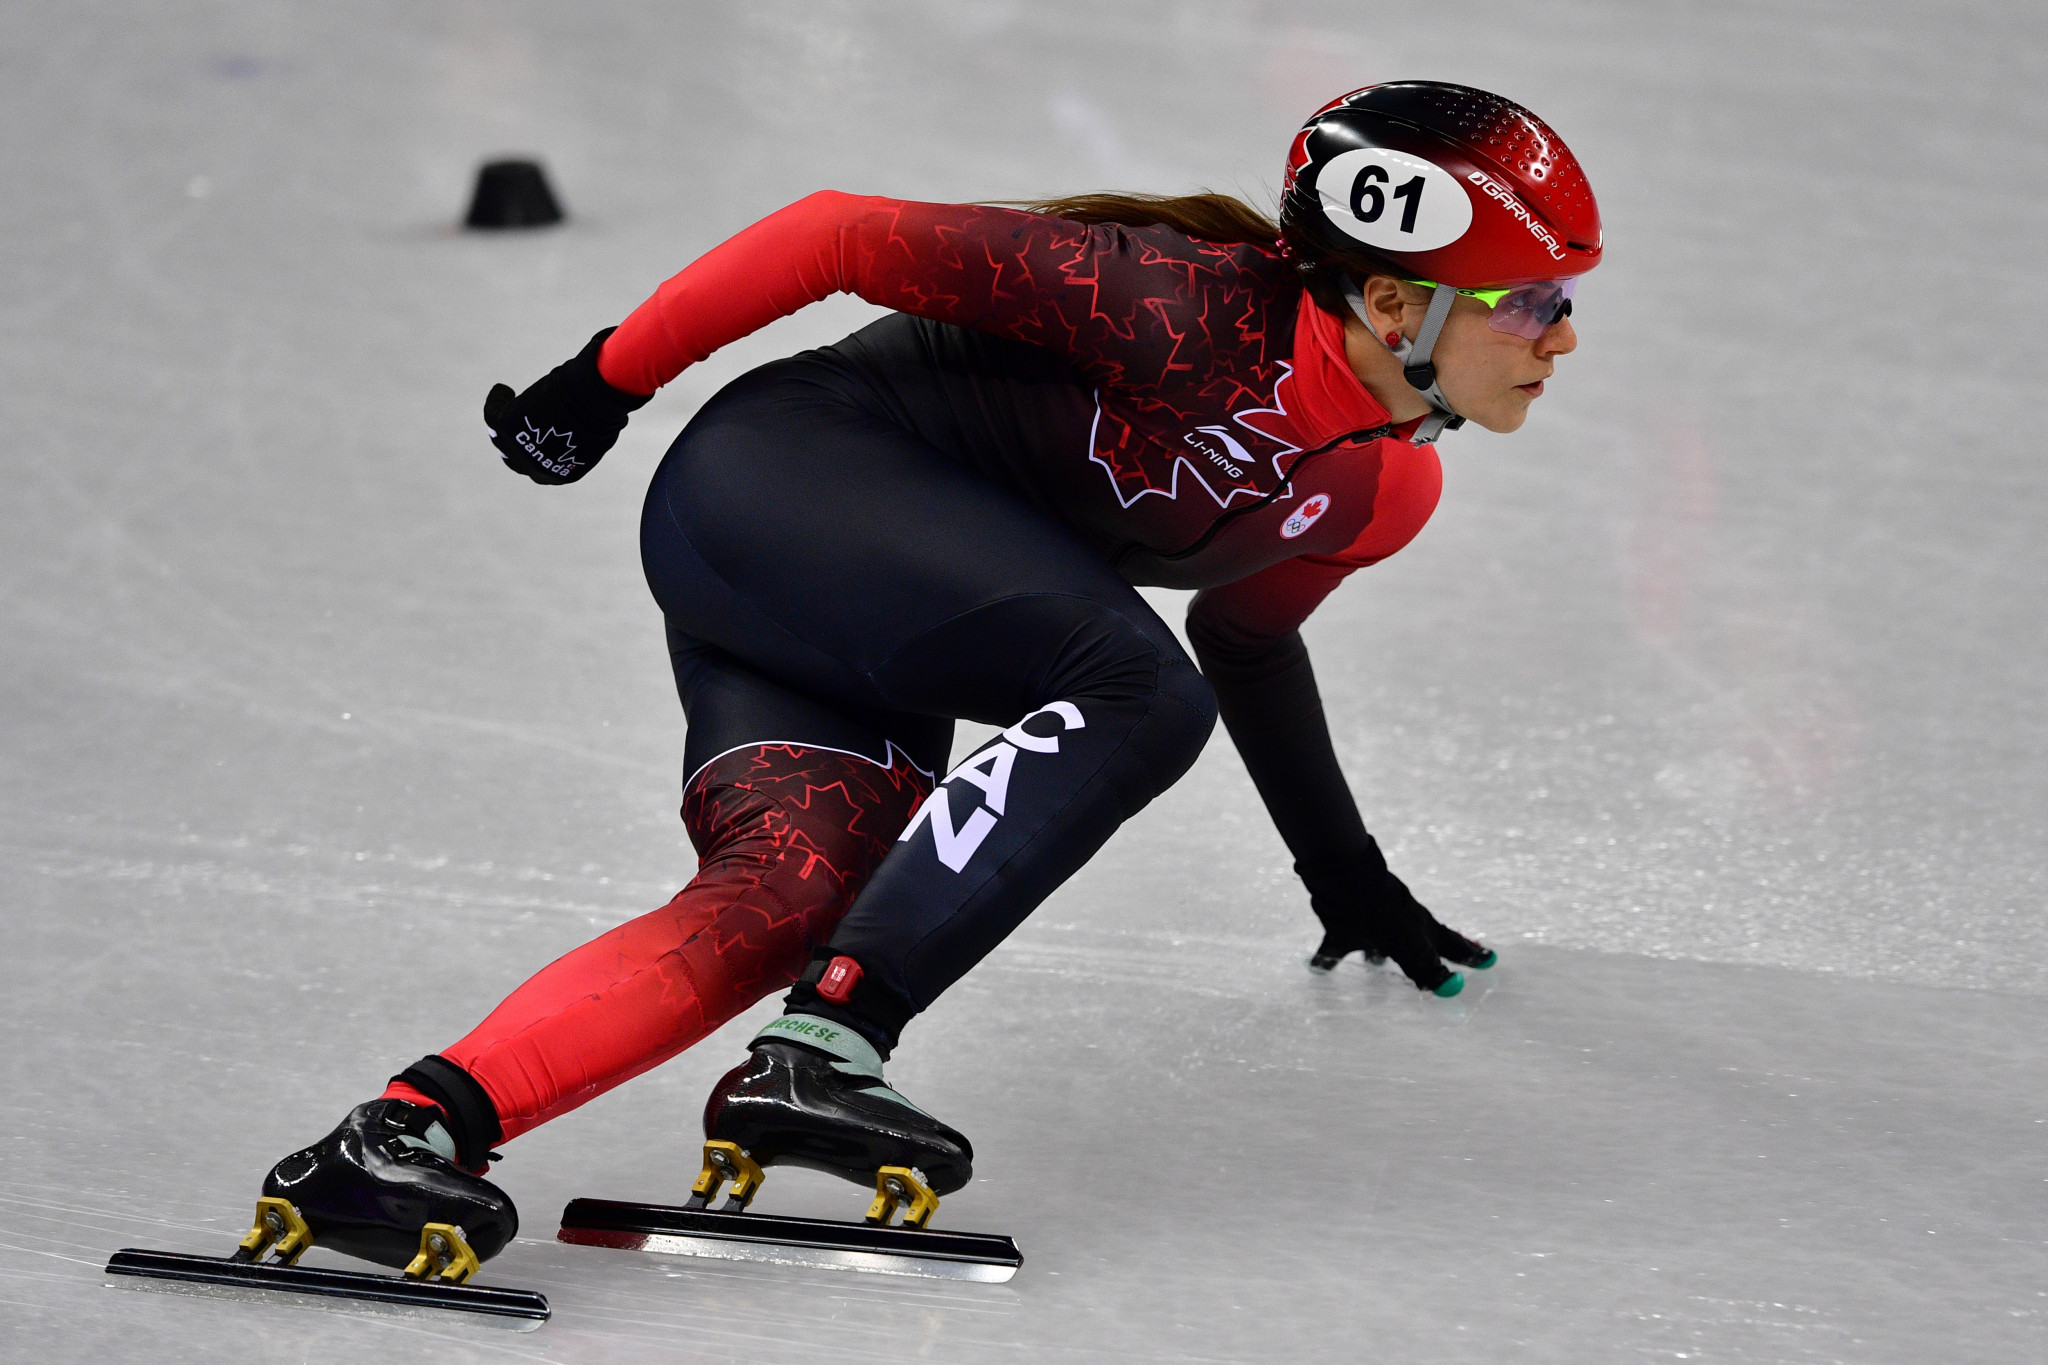 Olympian Kasandra Bradette of Canada is also set to retire from speed skating ©Getty Images